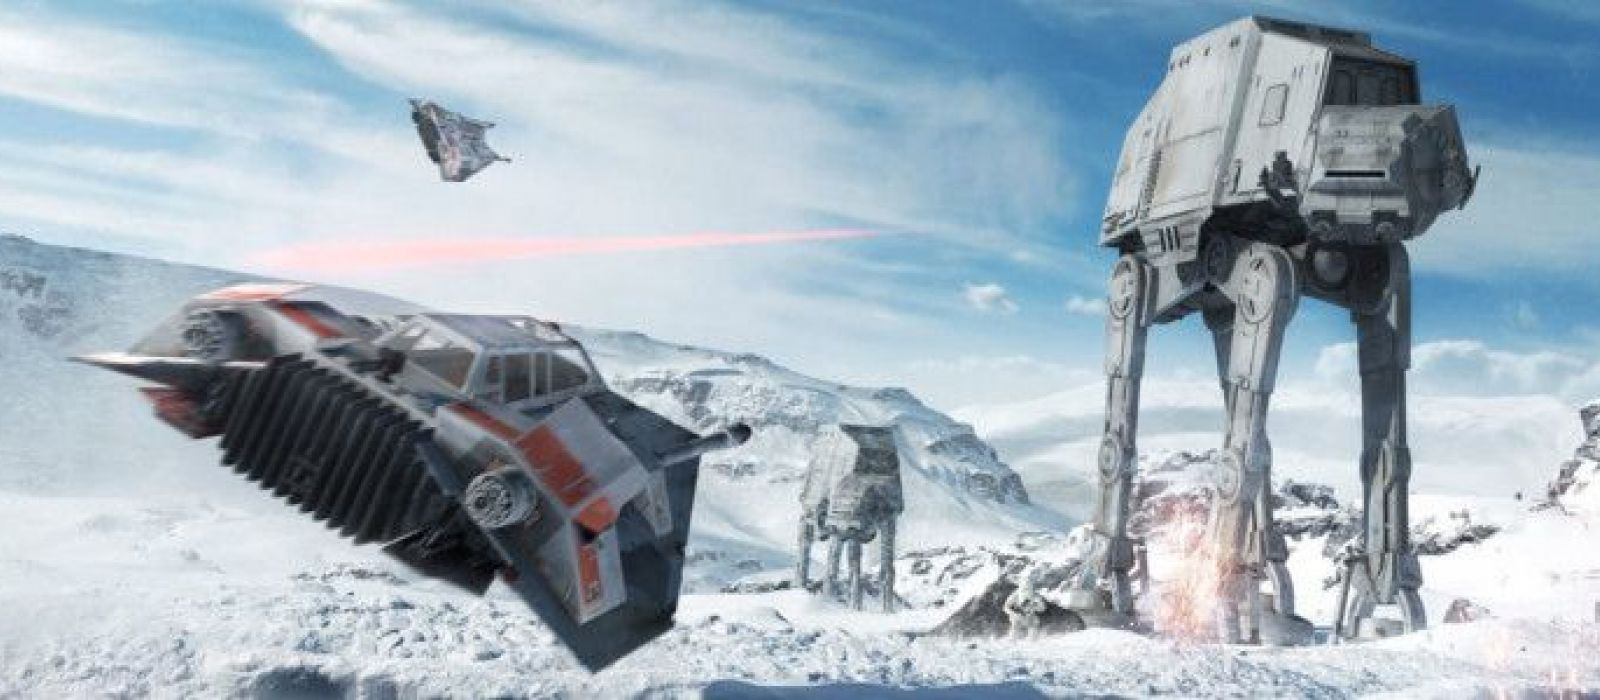 Star Wars Battlefront I, II, III: Седьмой эпизод не помог Star Wars Battlefront